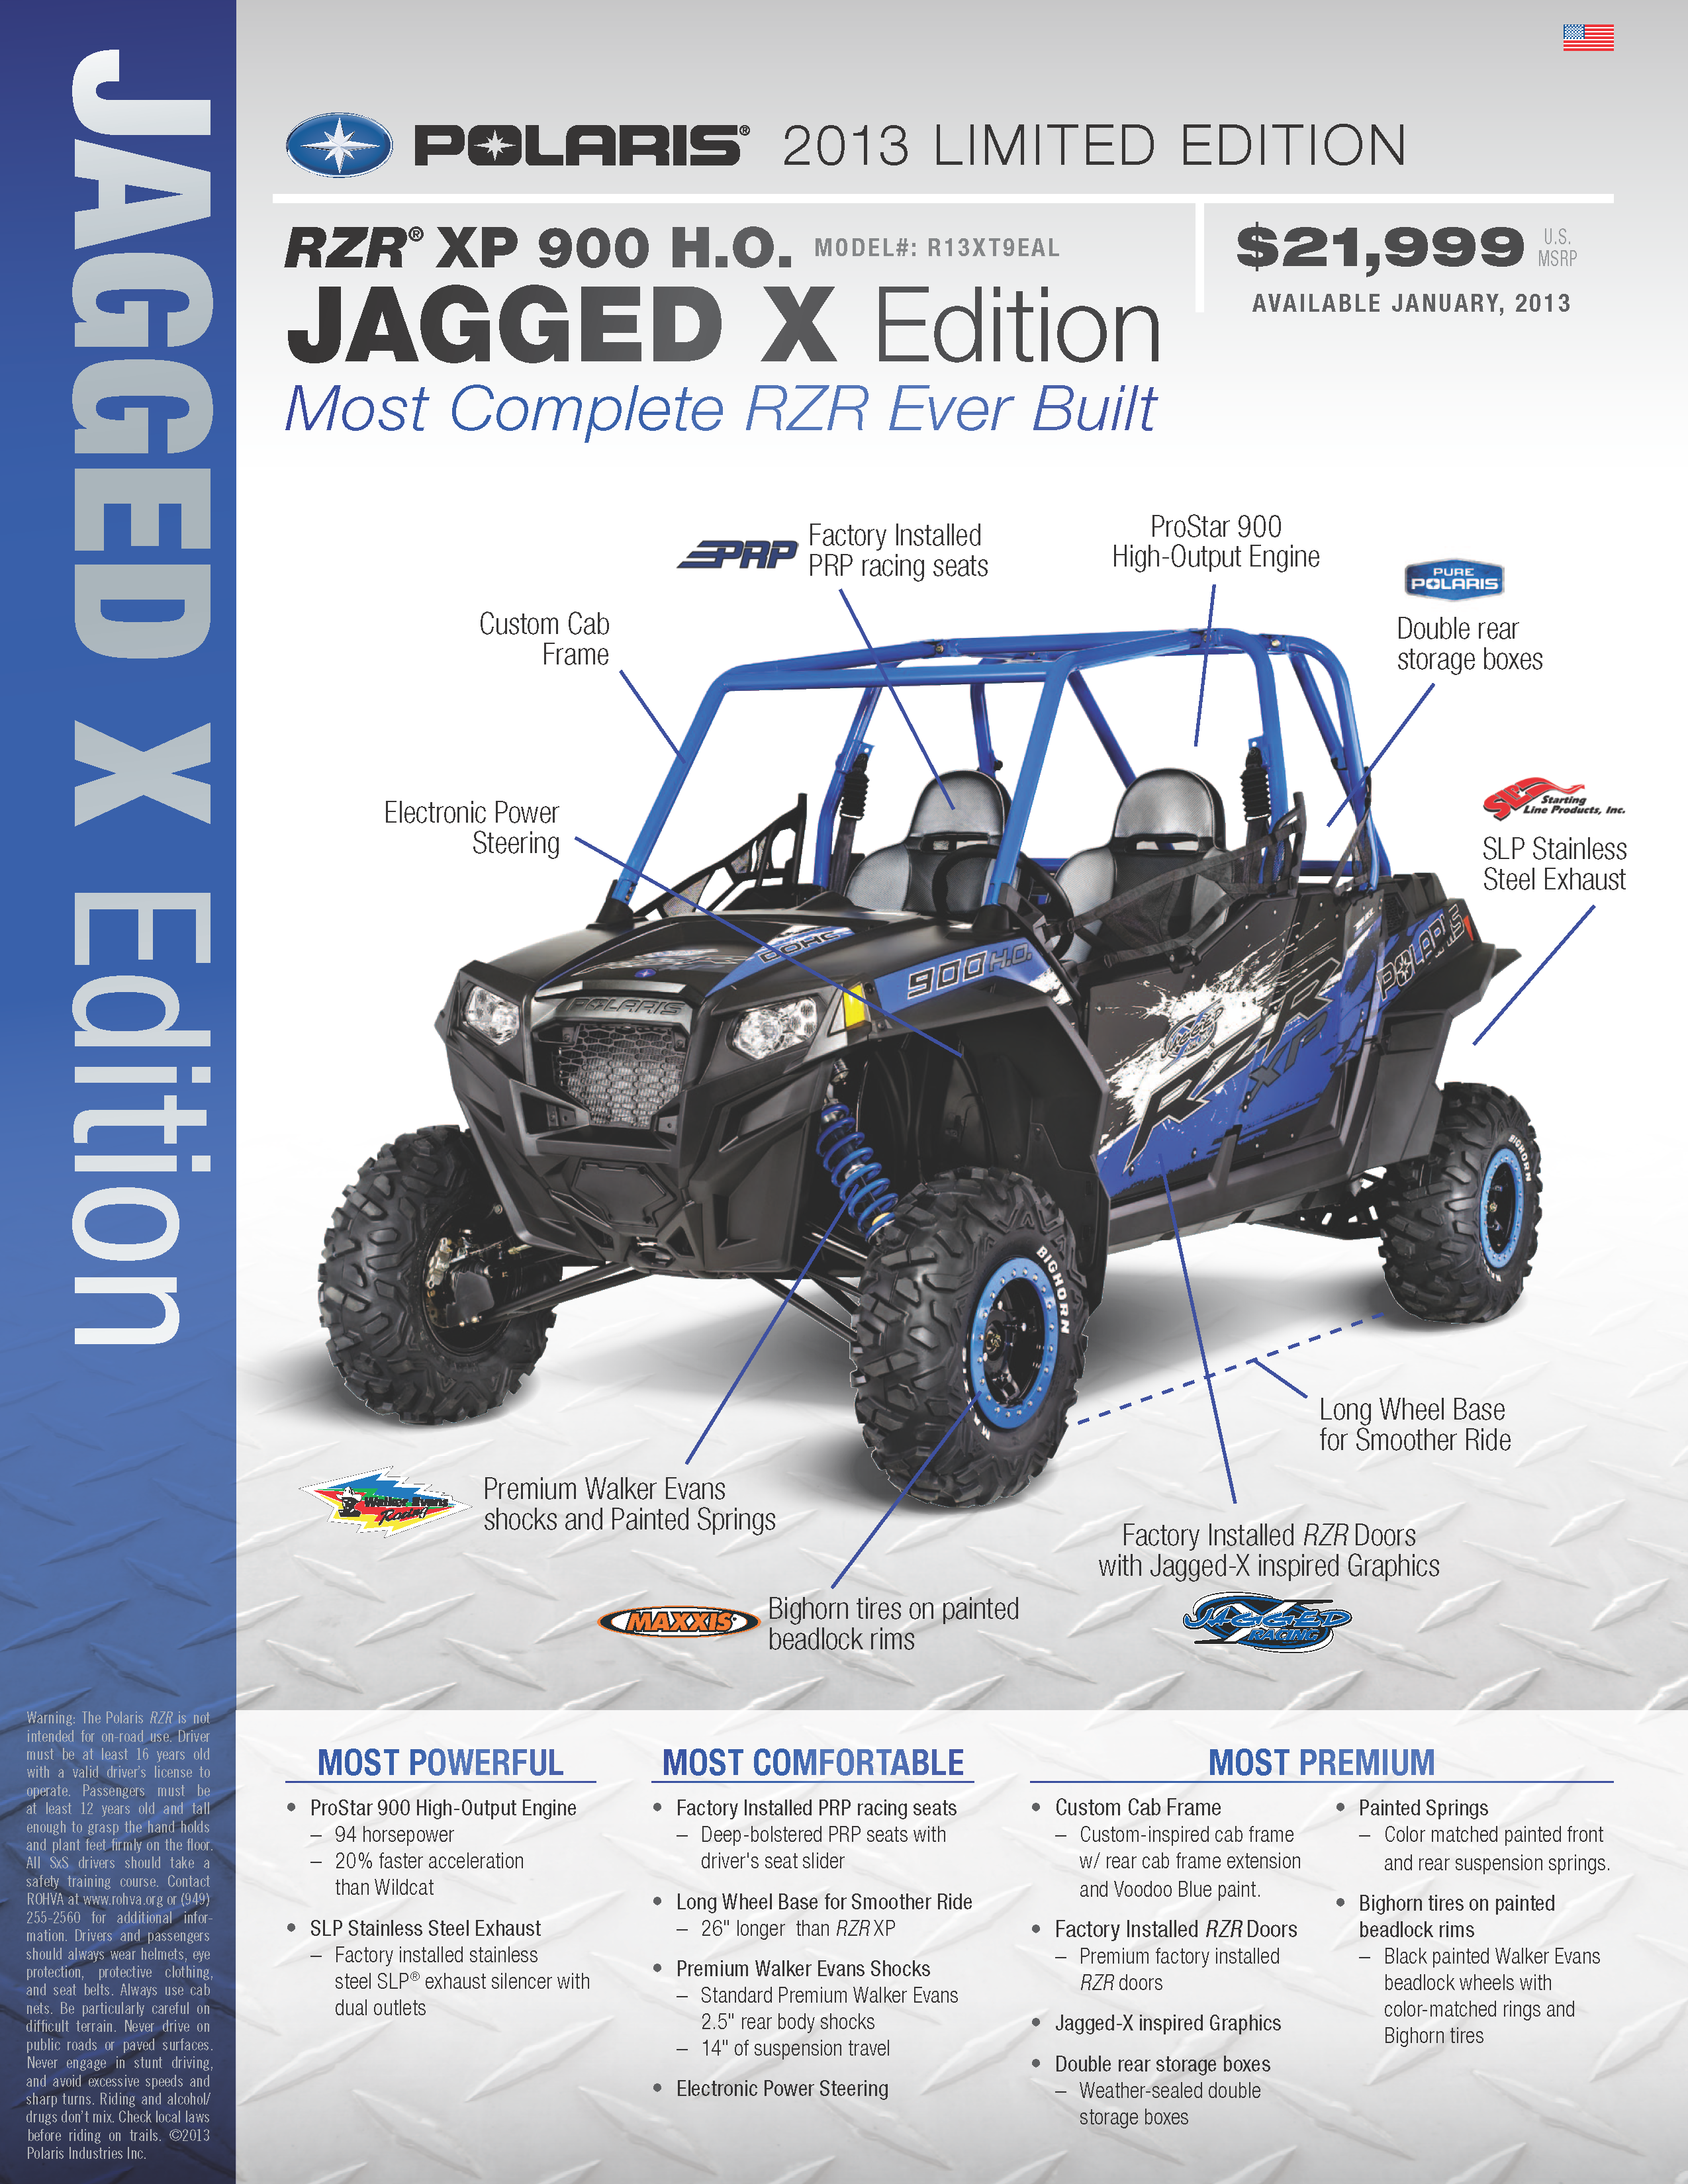 medium resolution of rzr xp 900 h o model r13xt9eal jagged x edition most complete rzr ever built